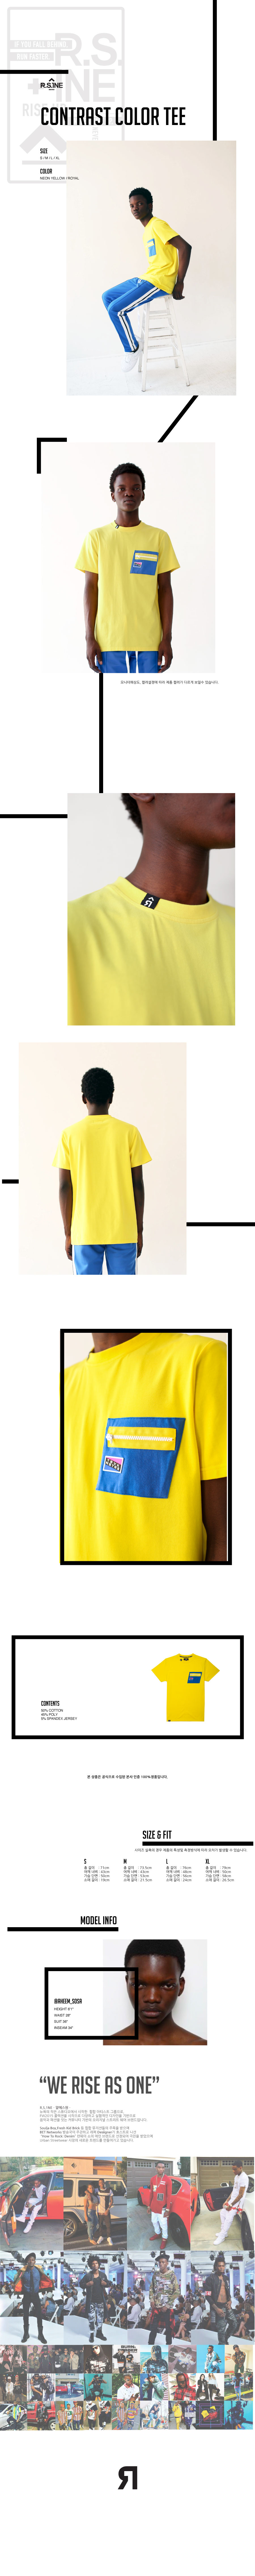 알에스원(R.S.1NE) CONTRAST COLOR TEE(YELLOW)